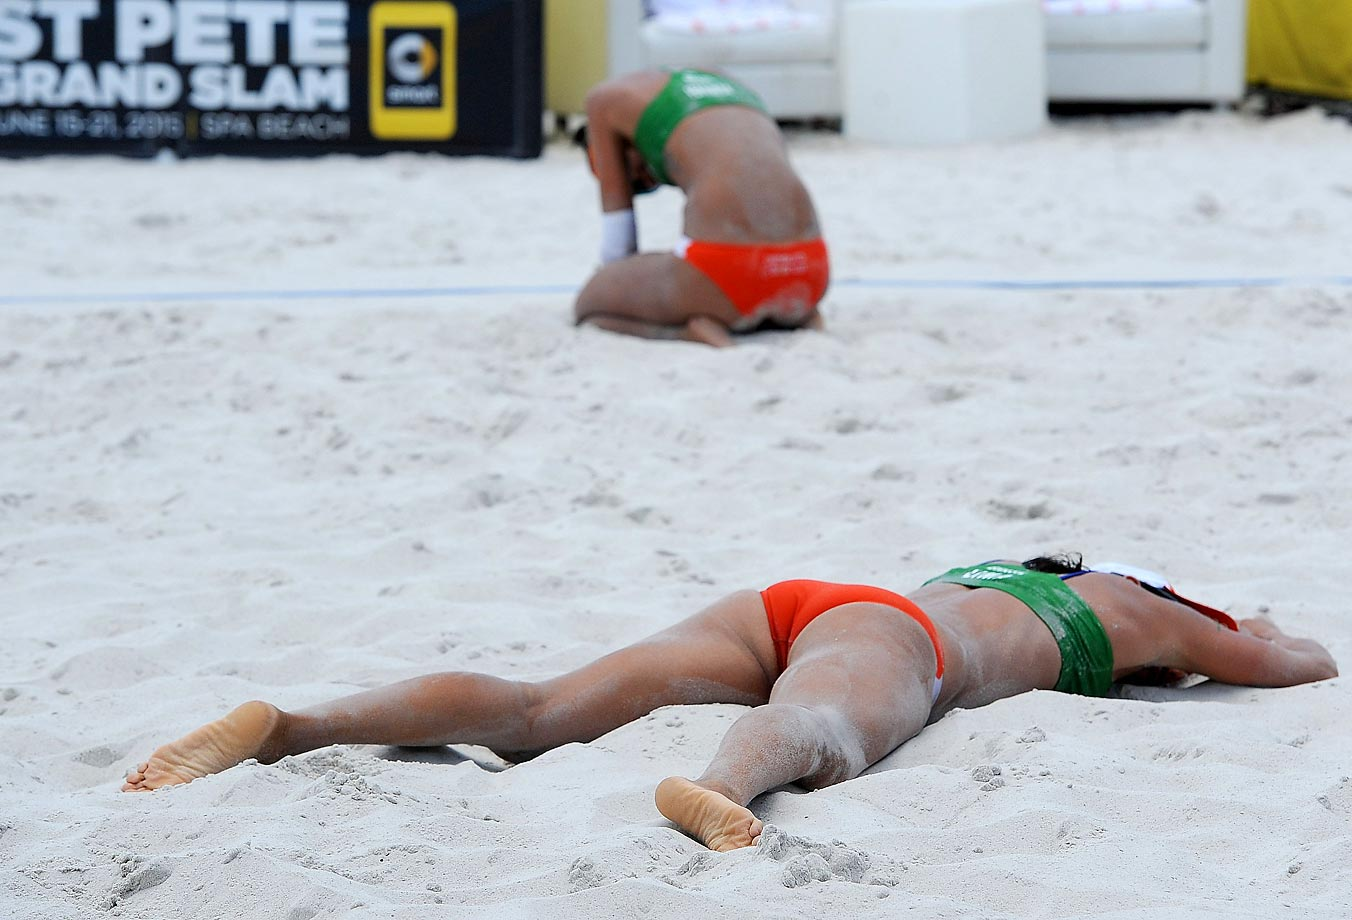 Fernanda Alves Berti and Taiana Lima of Brazil collapse after the final point of the bronze medal game, which they won.